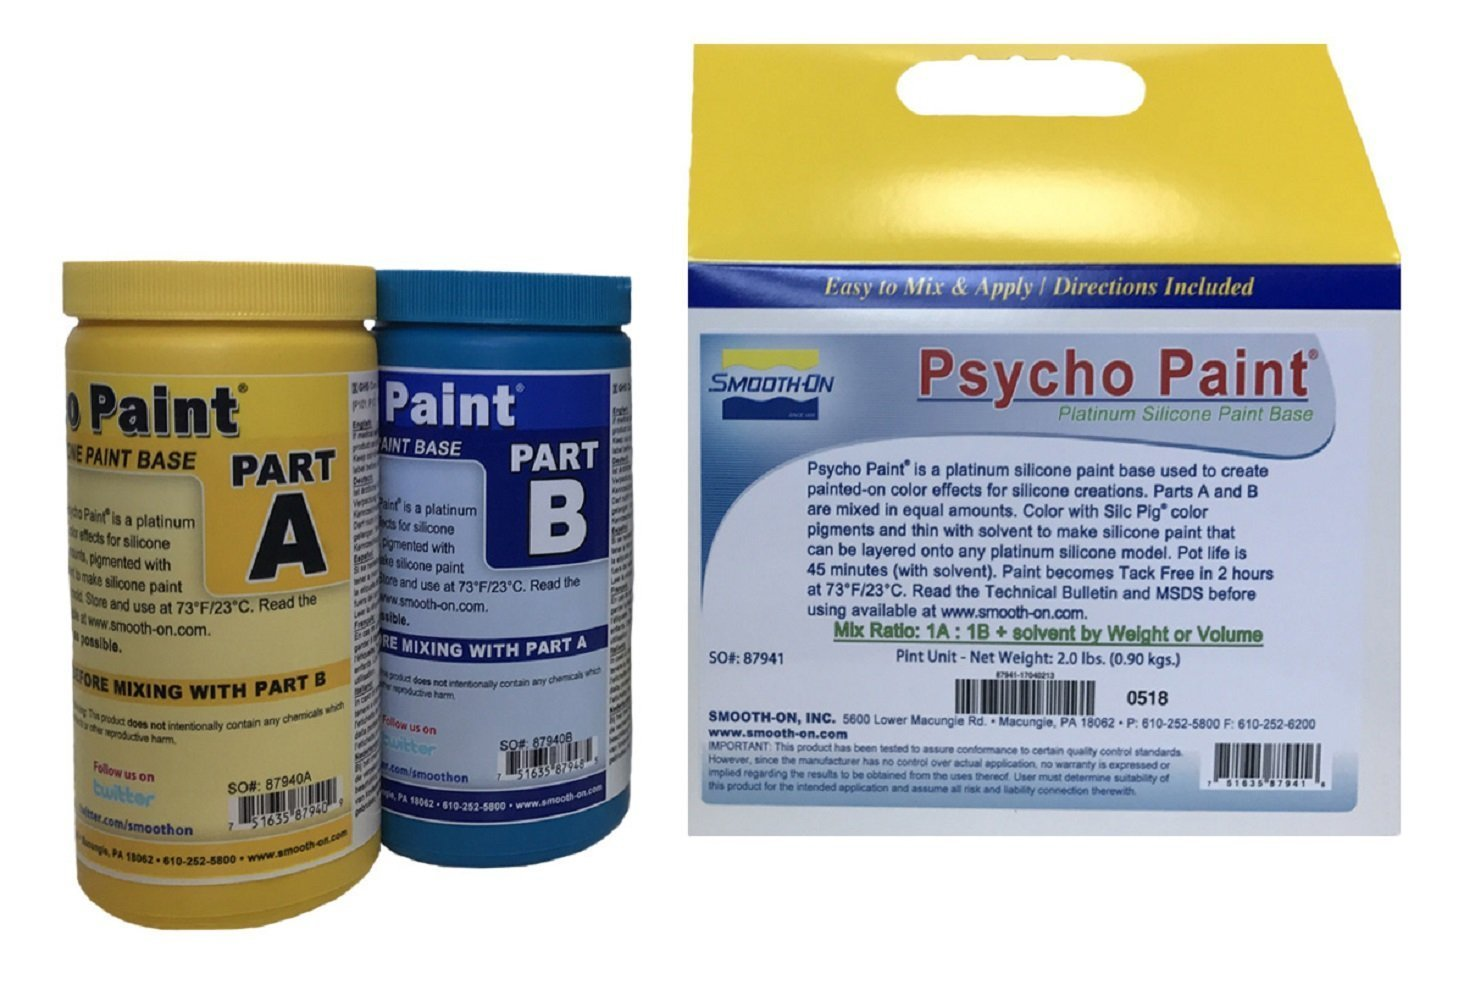 Smooth-on PSYCHO PAINT Platinum Silicone Paint Base - 1 lbs kit by Smooth-On